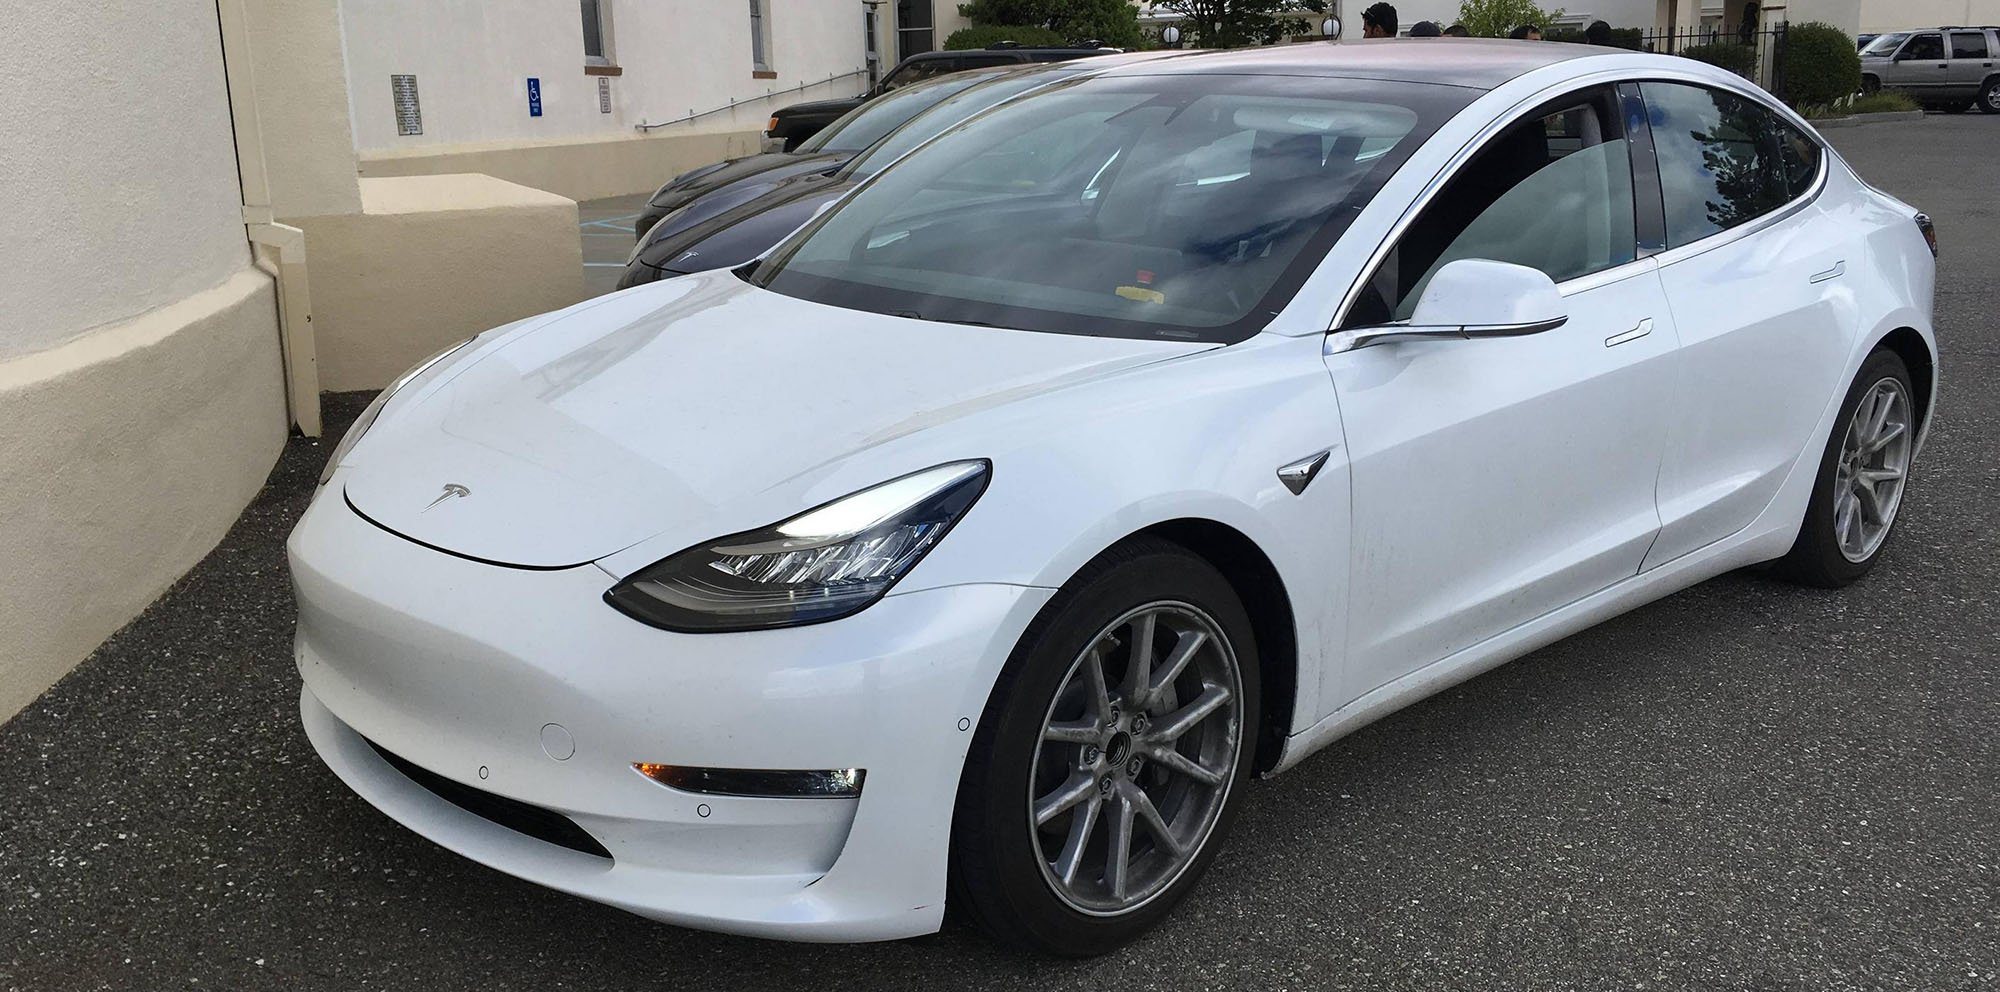 2018 Tesla Model 3 Spied And Specifications Leaked Update With Interior Photos Photos 1 Of 8